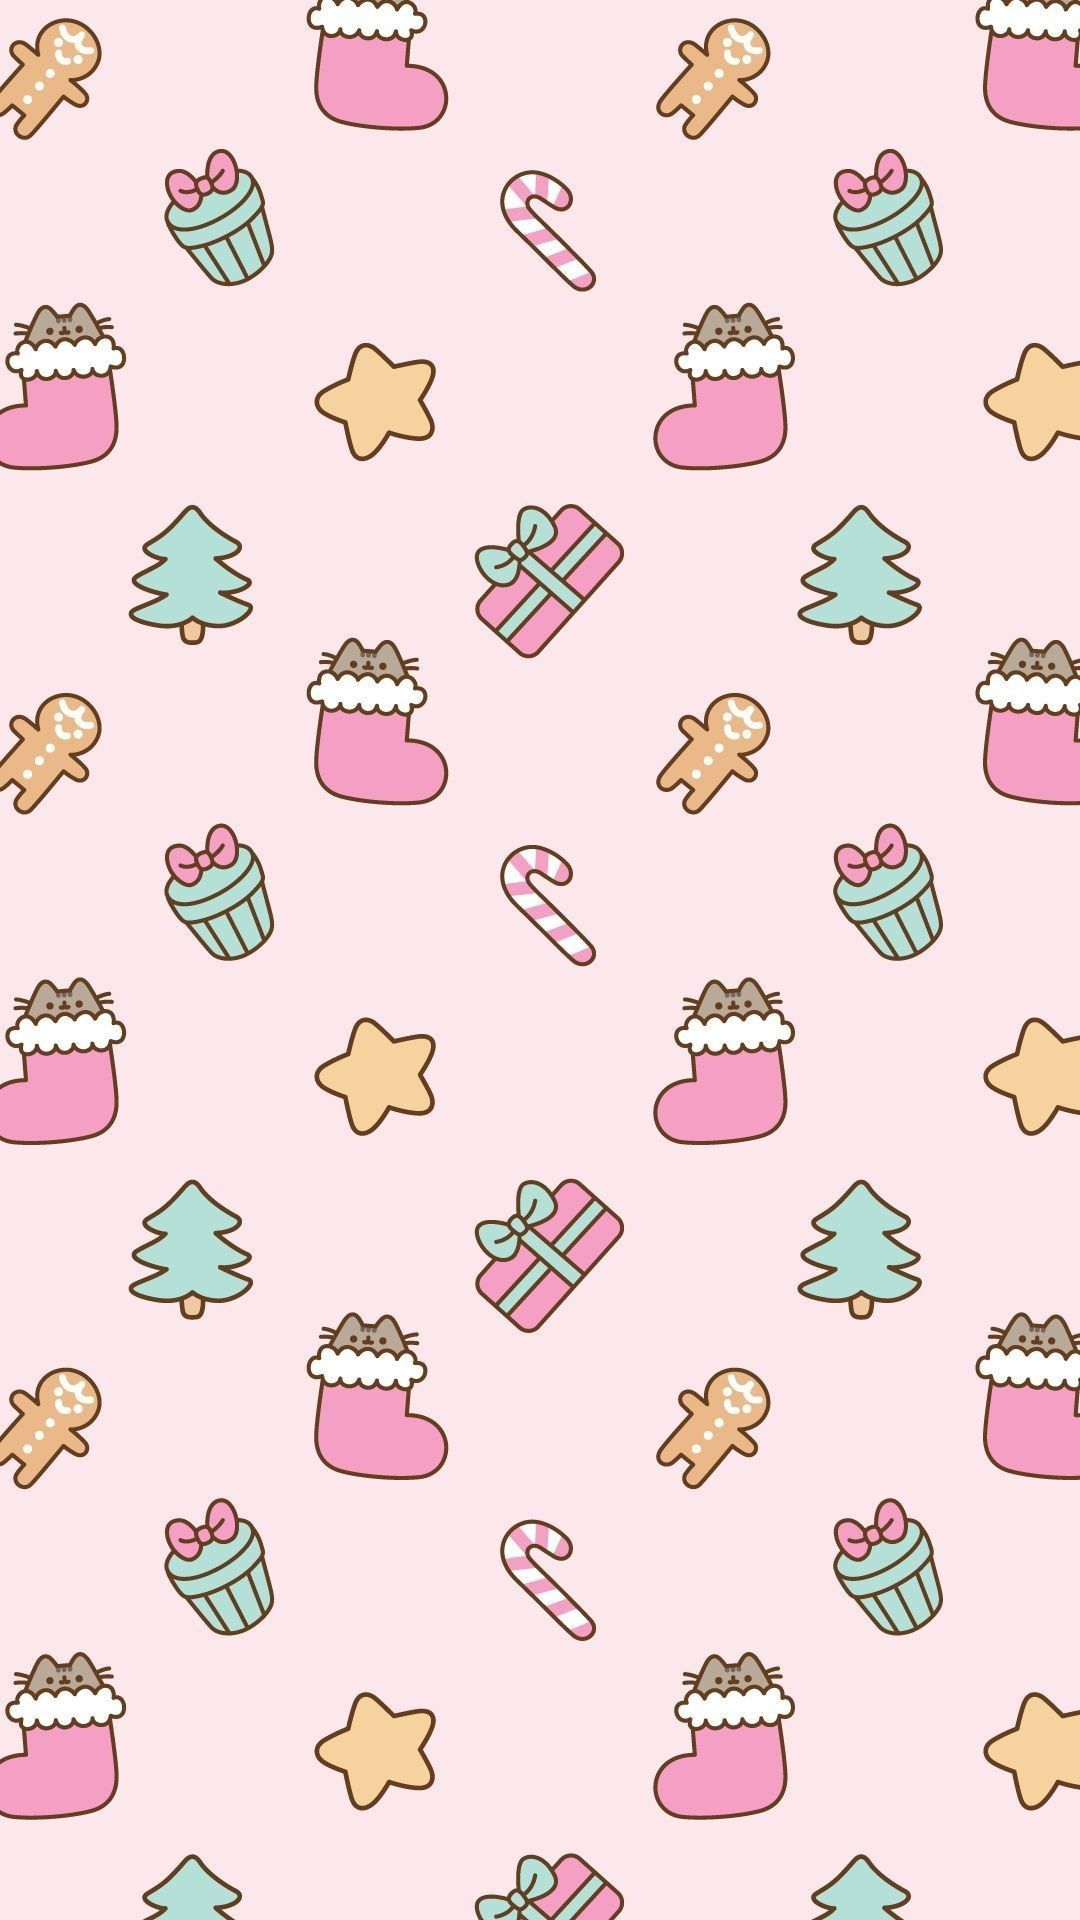 pink christmas aesthetic wallpapers wallpaper cave pink christmas aesthetic wallpapers